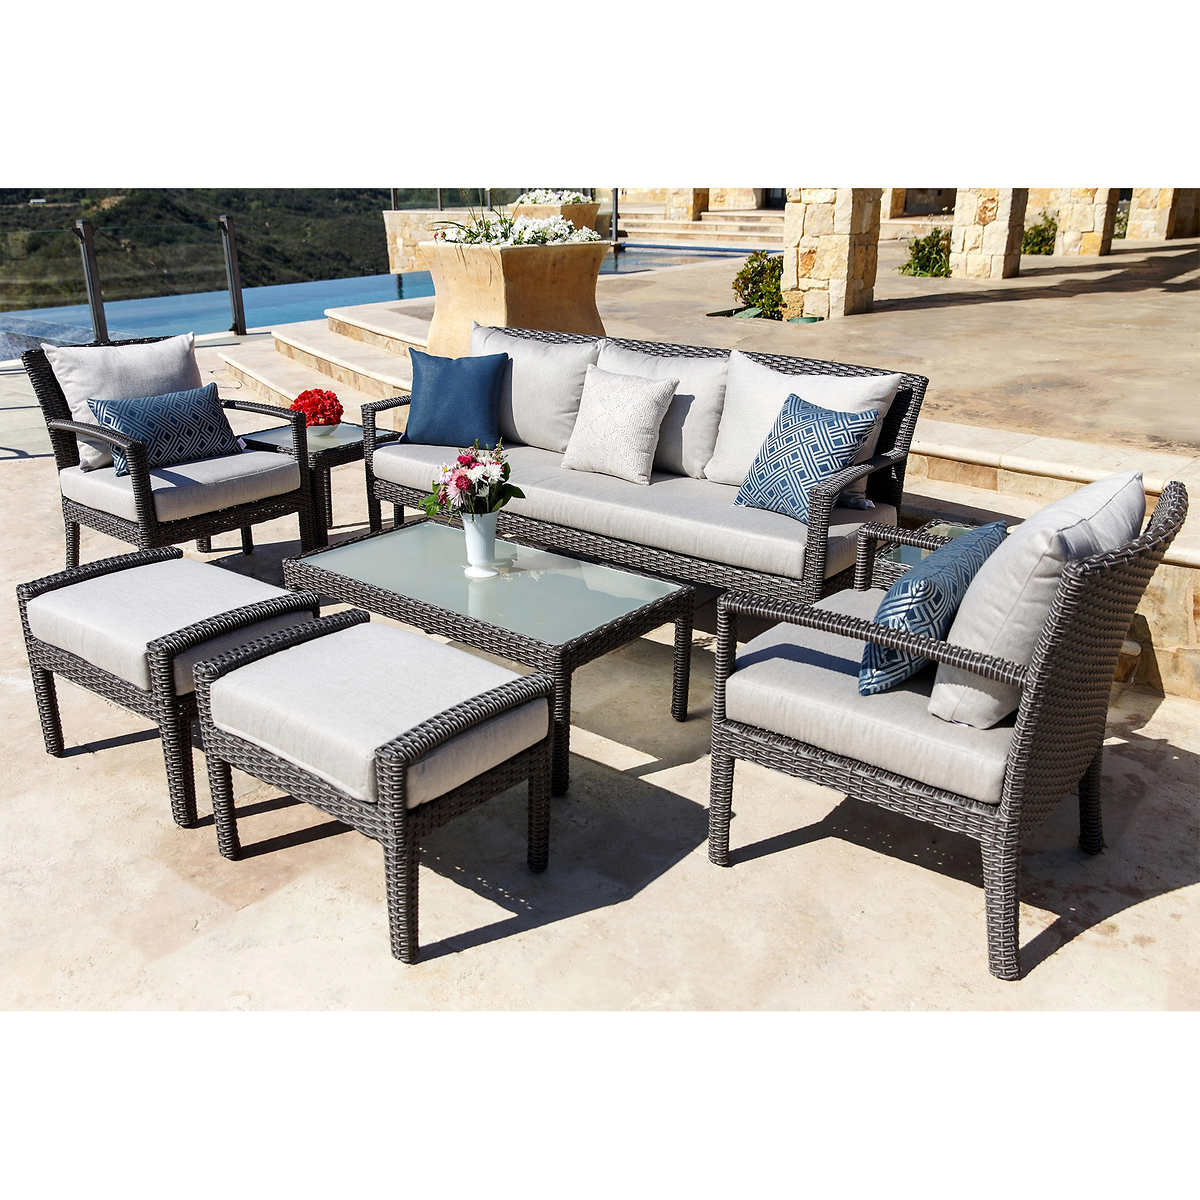 Patio Furniture Pictures seating sets | costco